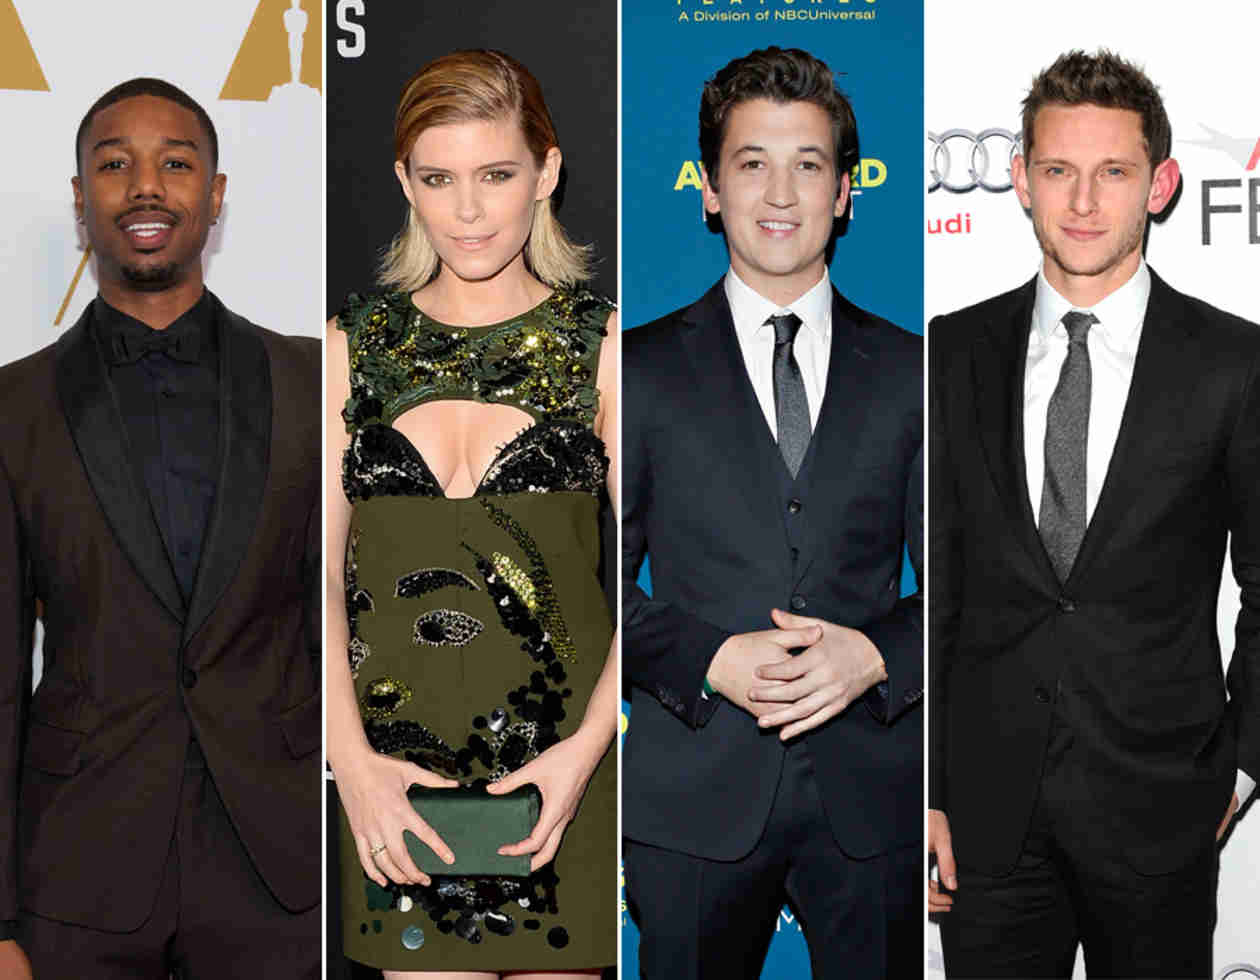 Fantastic Four Cast Revealed: Kate Mara, Michael B. Jordan, Miles Teller, and Jamie Bell On Board!